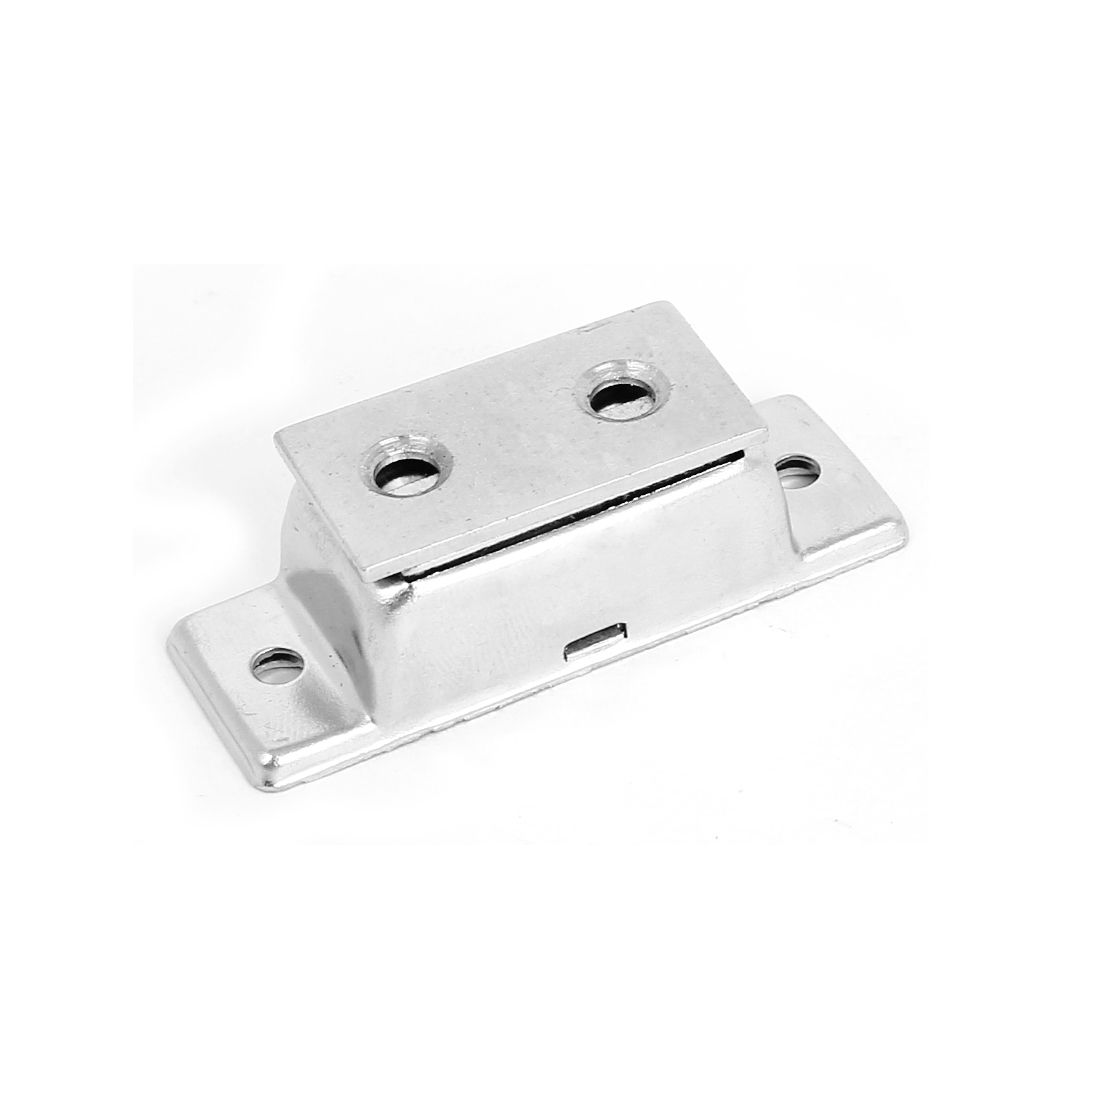 Stainless Steel Door Cabinet Drawer Magnetic Catch Stopper Holder Latch